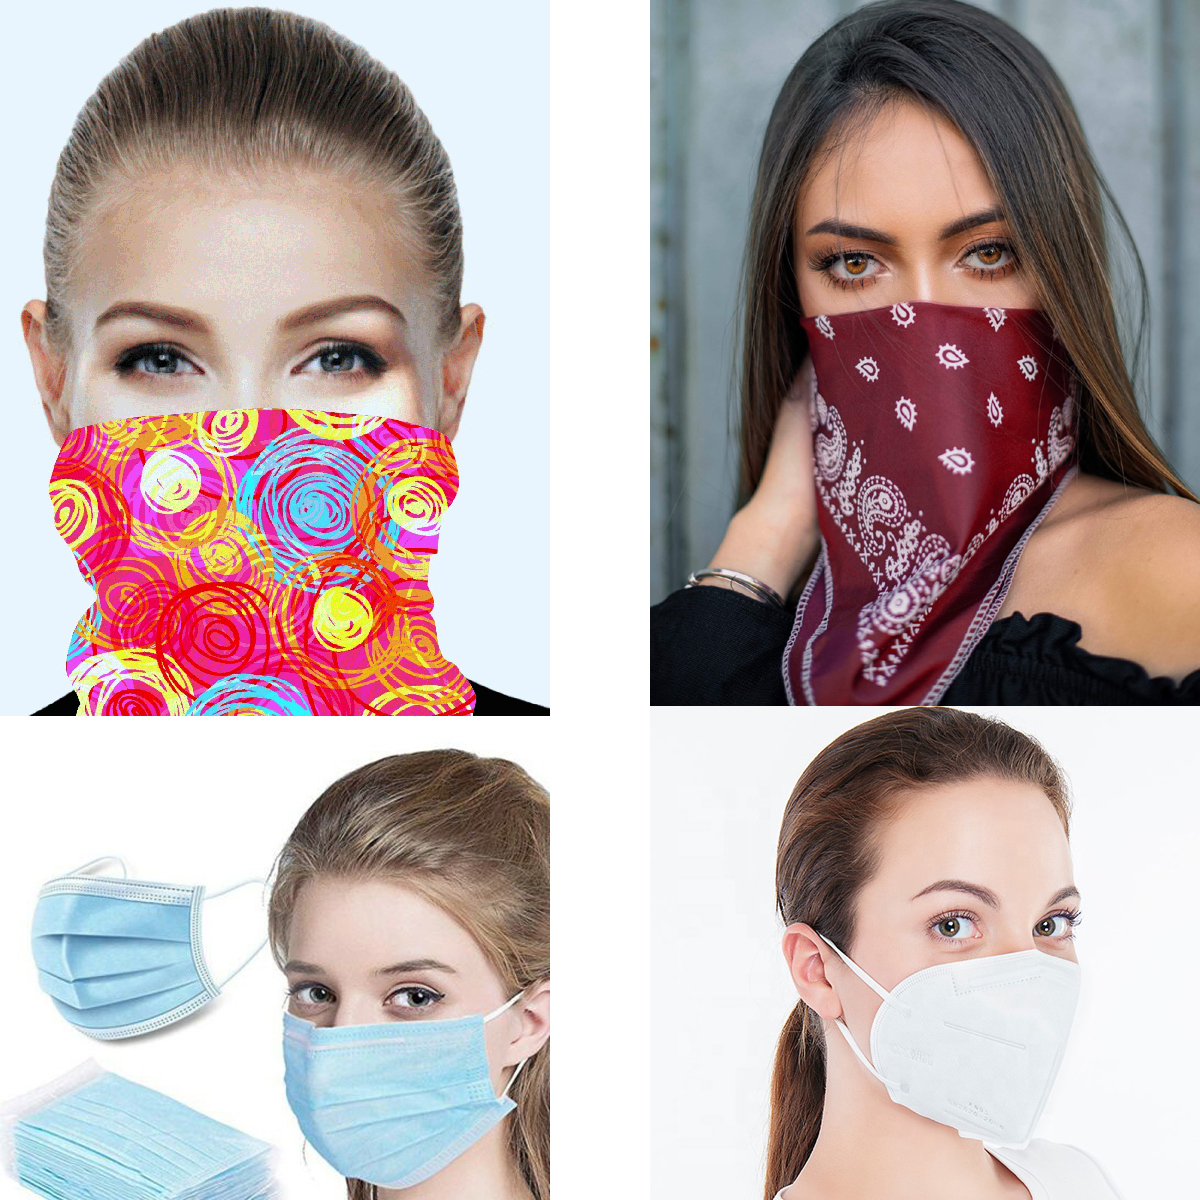 Mega Face Masks bundle includes tube bandanas, square bandanas, blue disposable face masks and the white KN95 disposable face masks